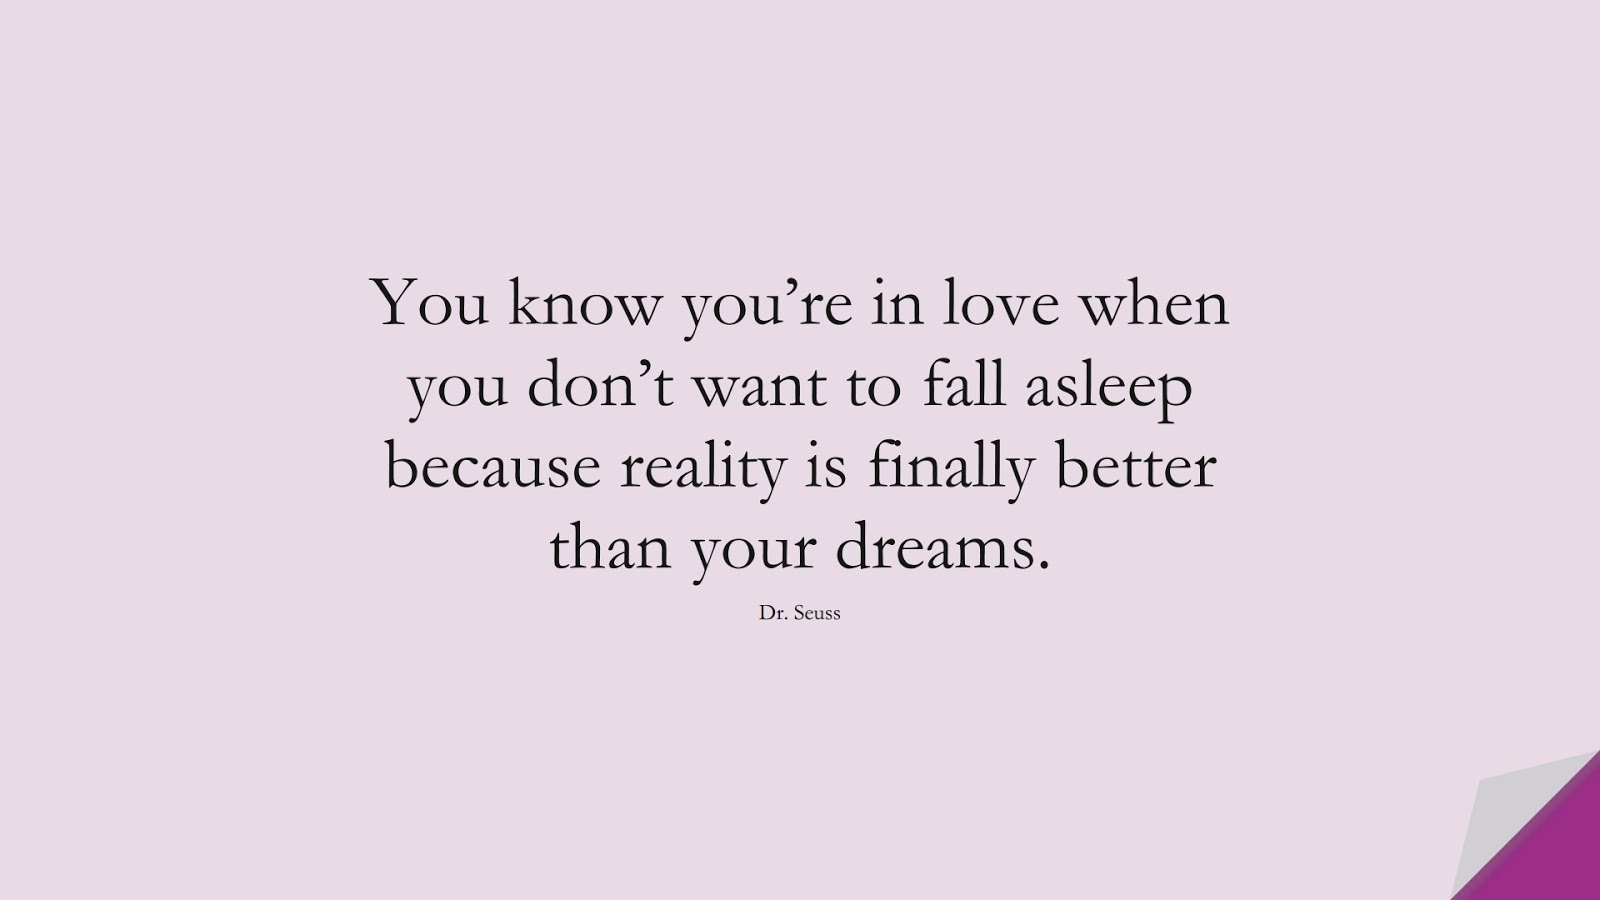 You know you're in love when you don't want to fall asleep because reality is finally better than your dreams. (Dr. Seuss);  #LifeQuotes